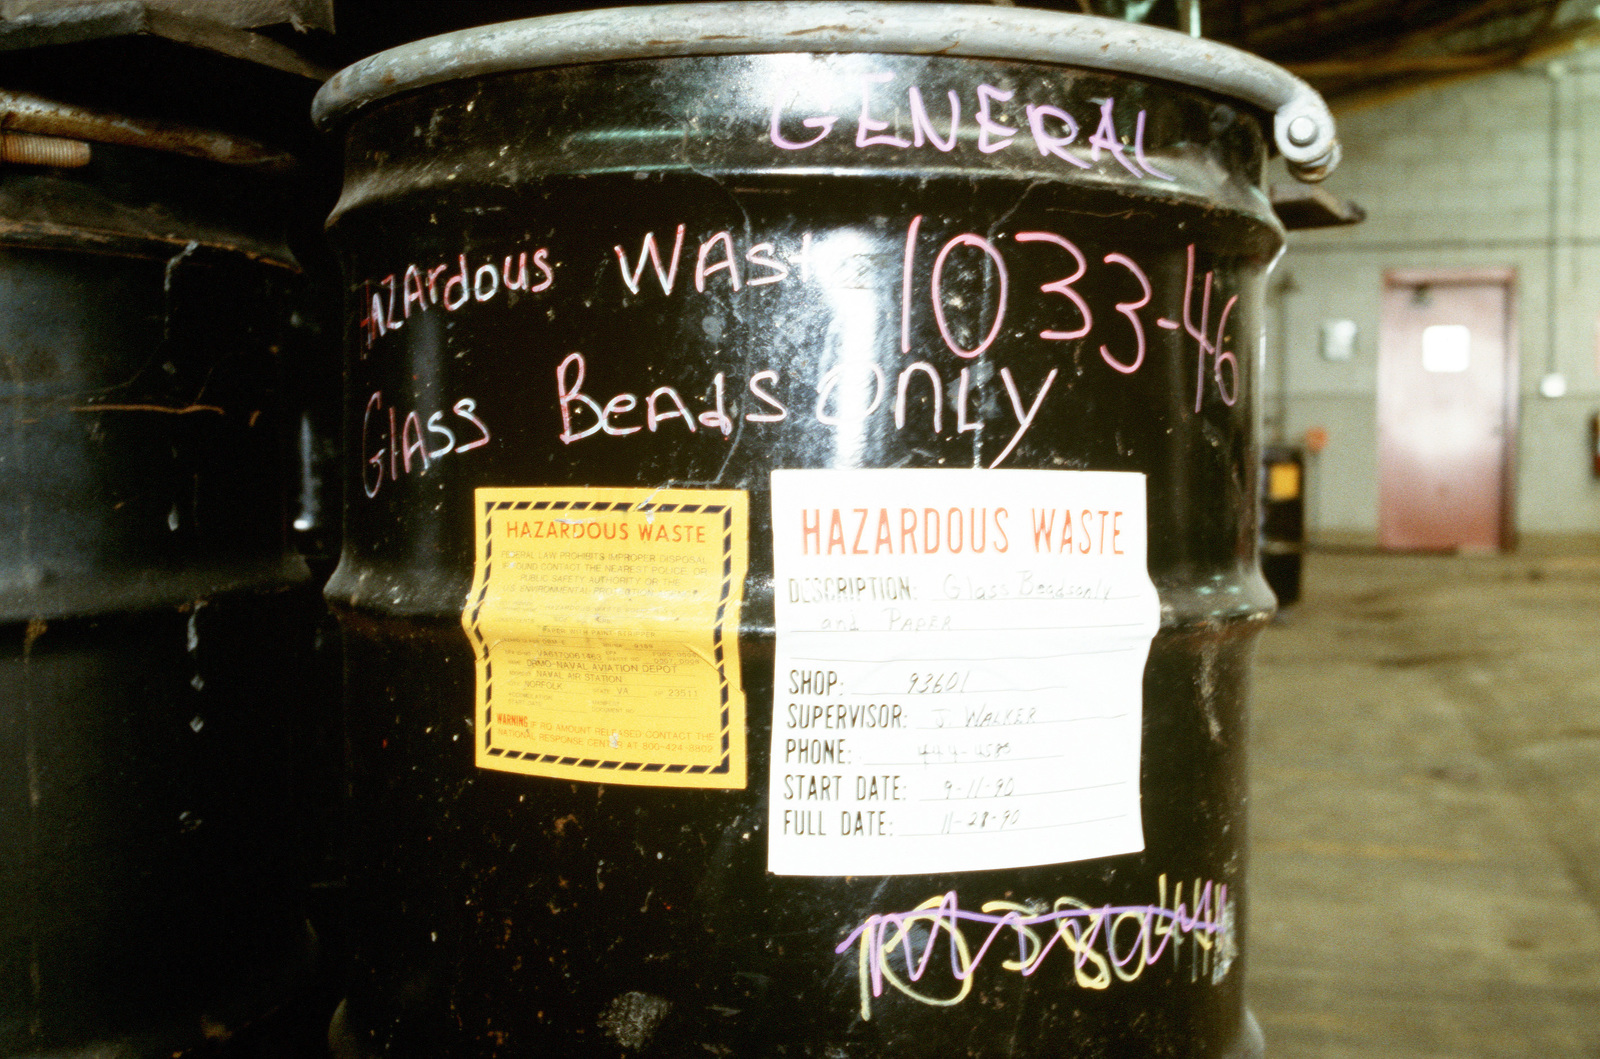 A view of the documentation affixed to the side of a hazardous waste barrel in a warehouse